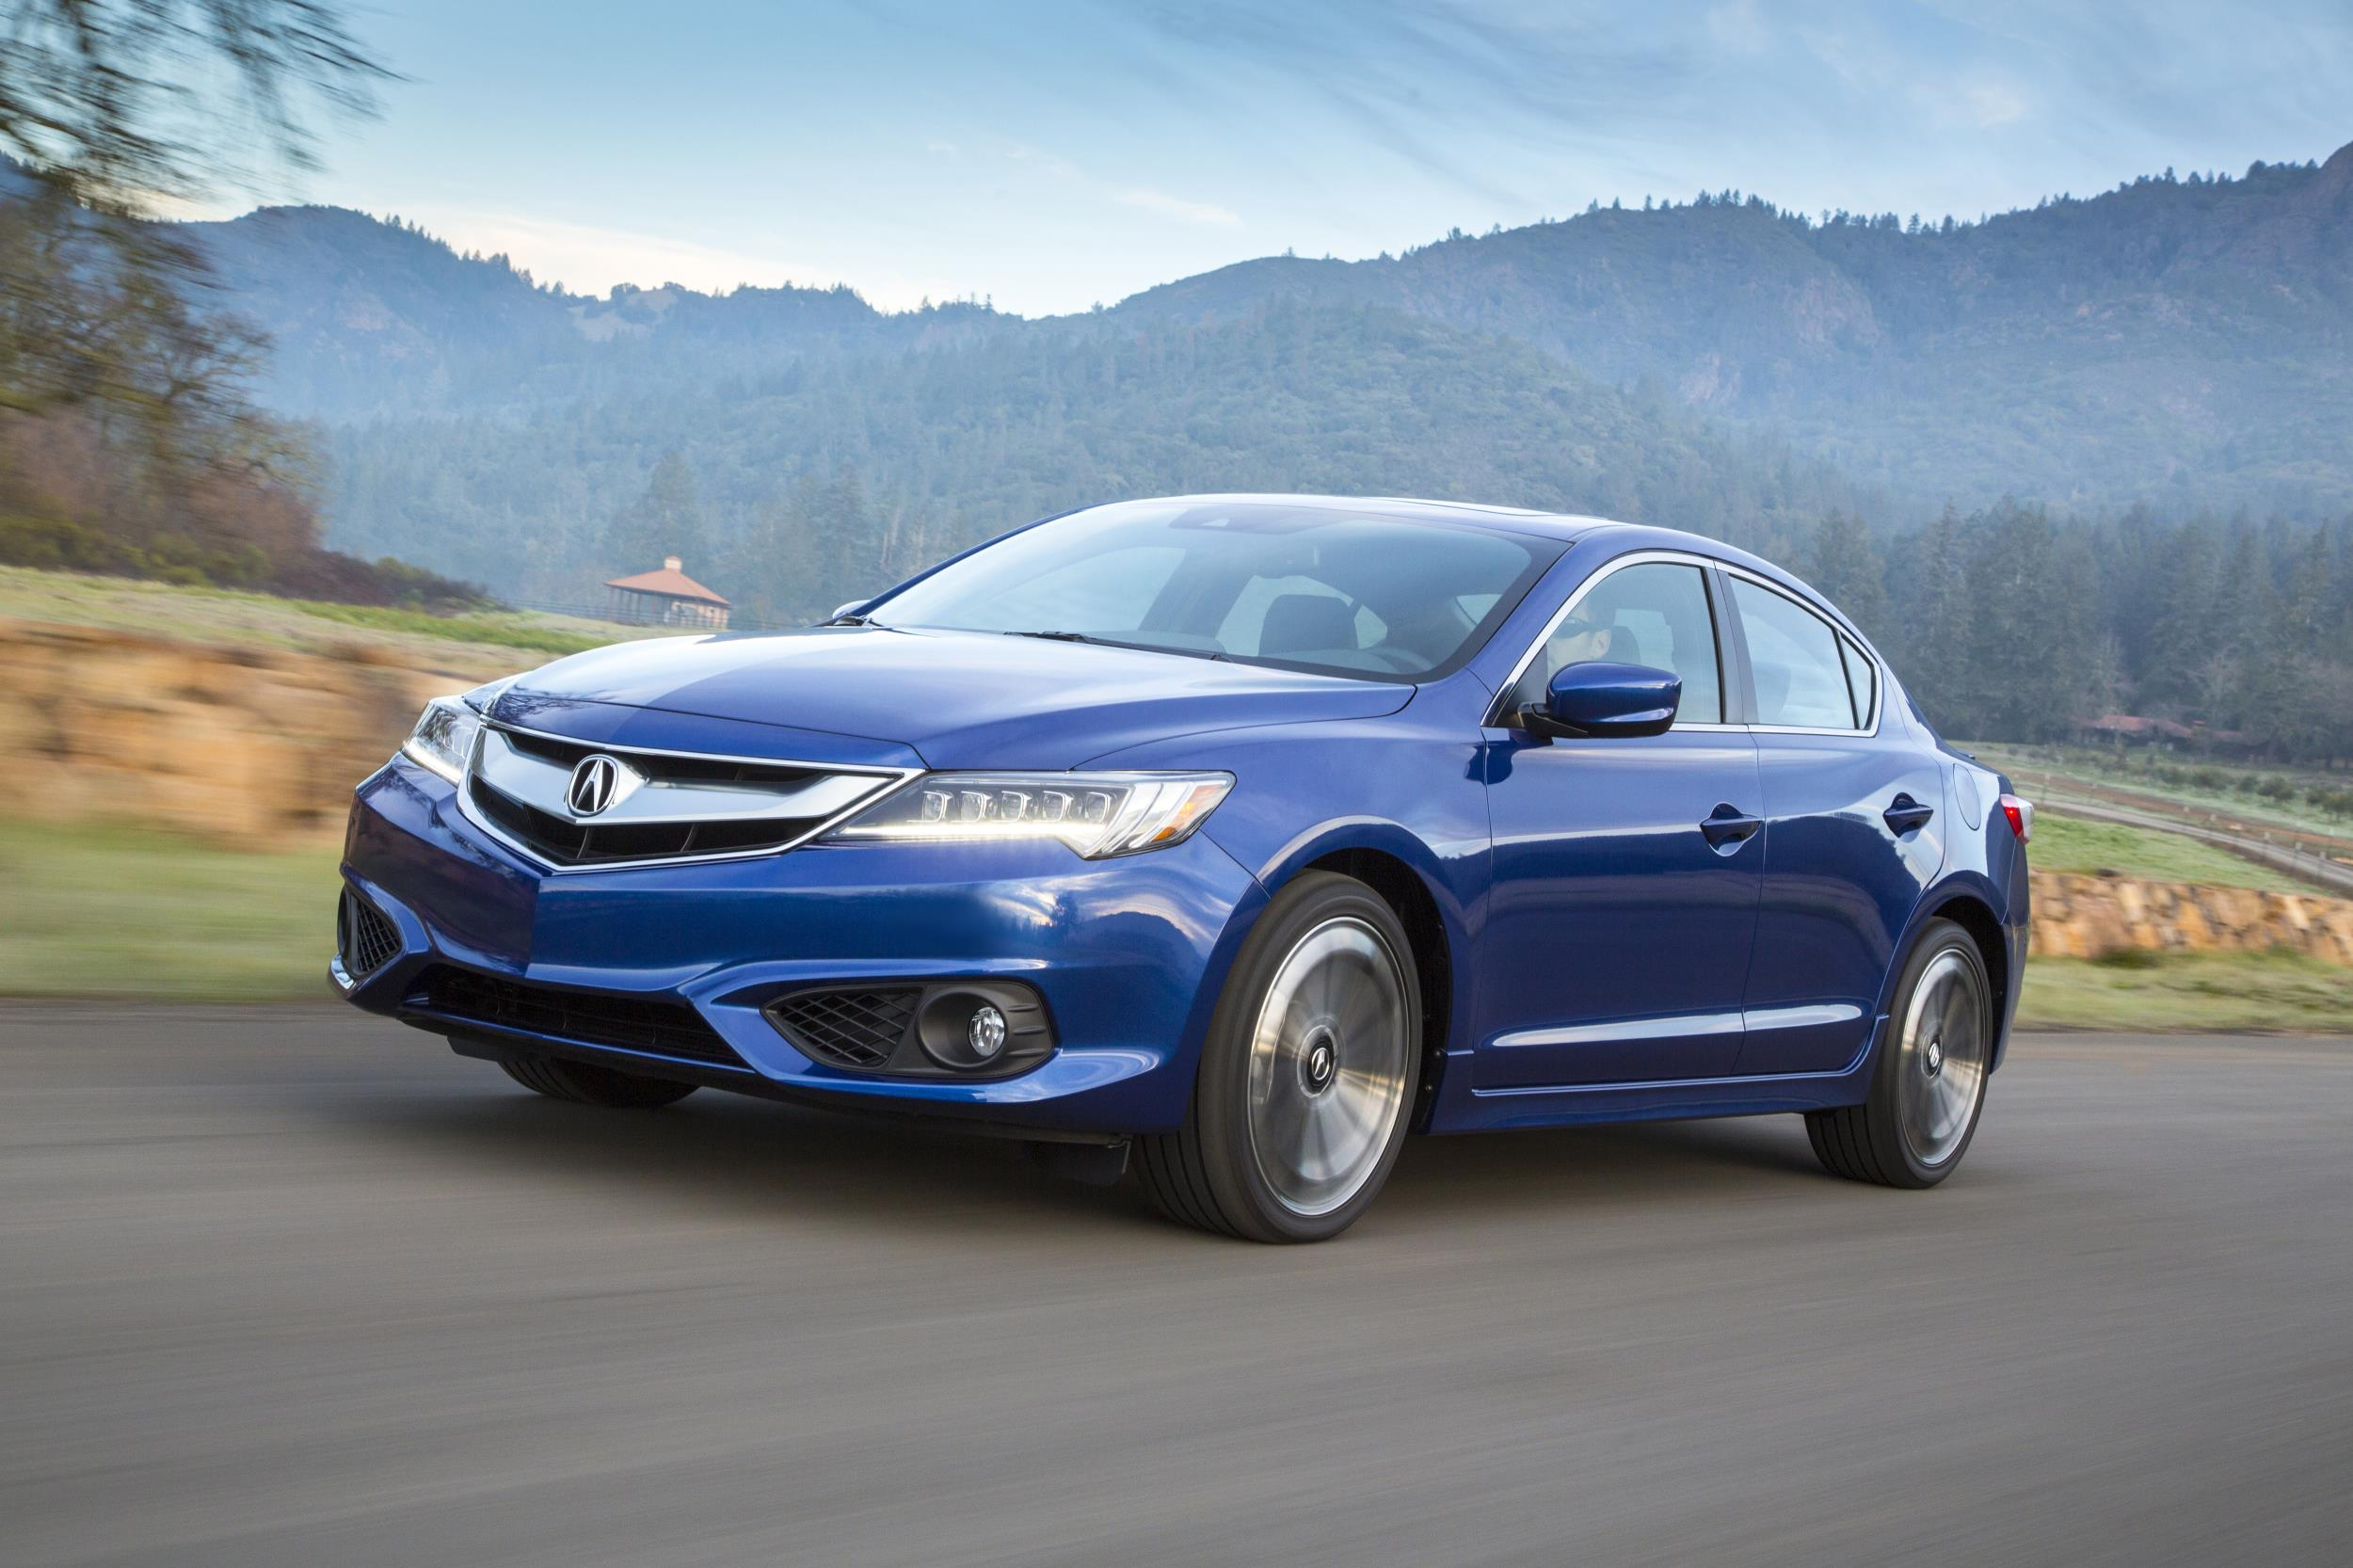 prices tlx gas specs review s beautiful speed awesome price ilx of mileage acura videos amp top